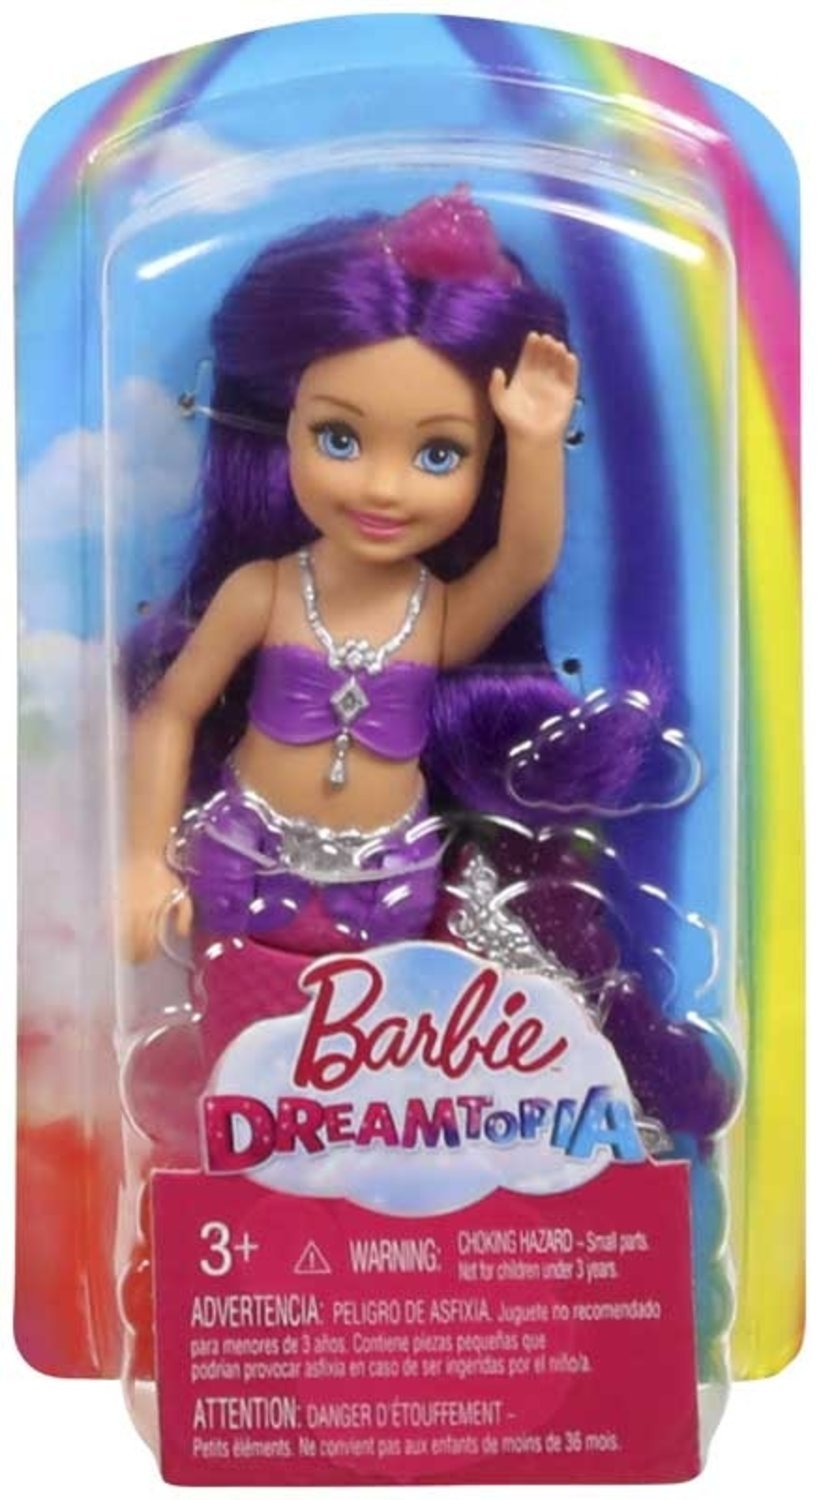 Barbie Dreamtopia Sparkle Mountain Mermaid